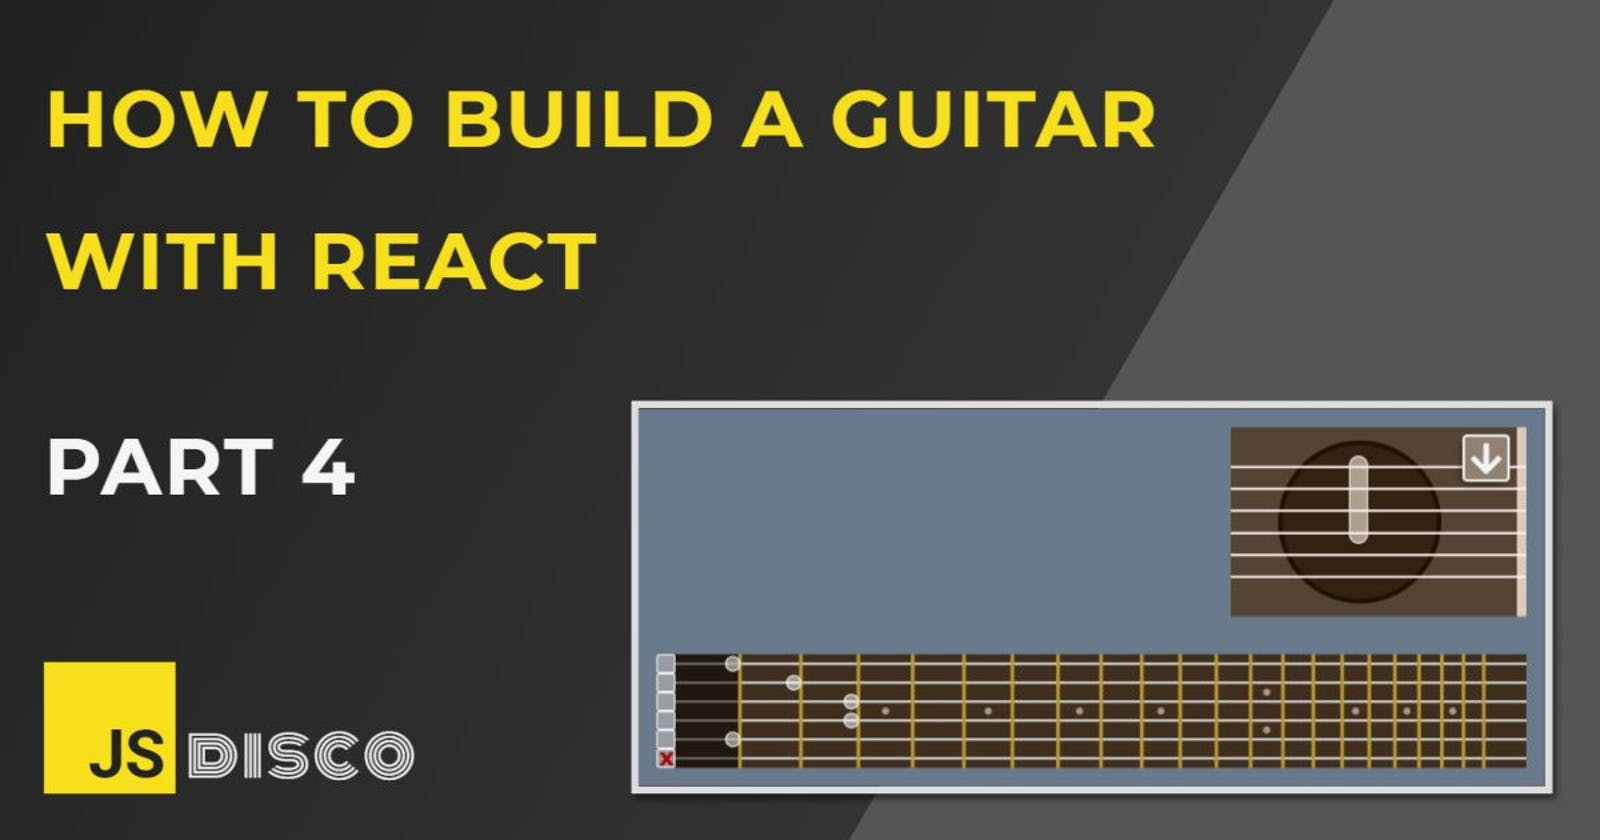 Build a Guitar with Reactjs (4): The Mute Buttons